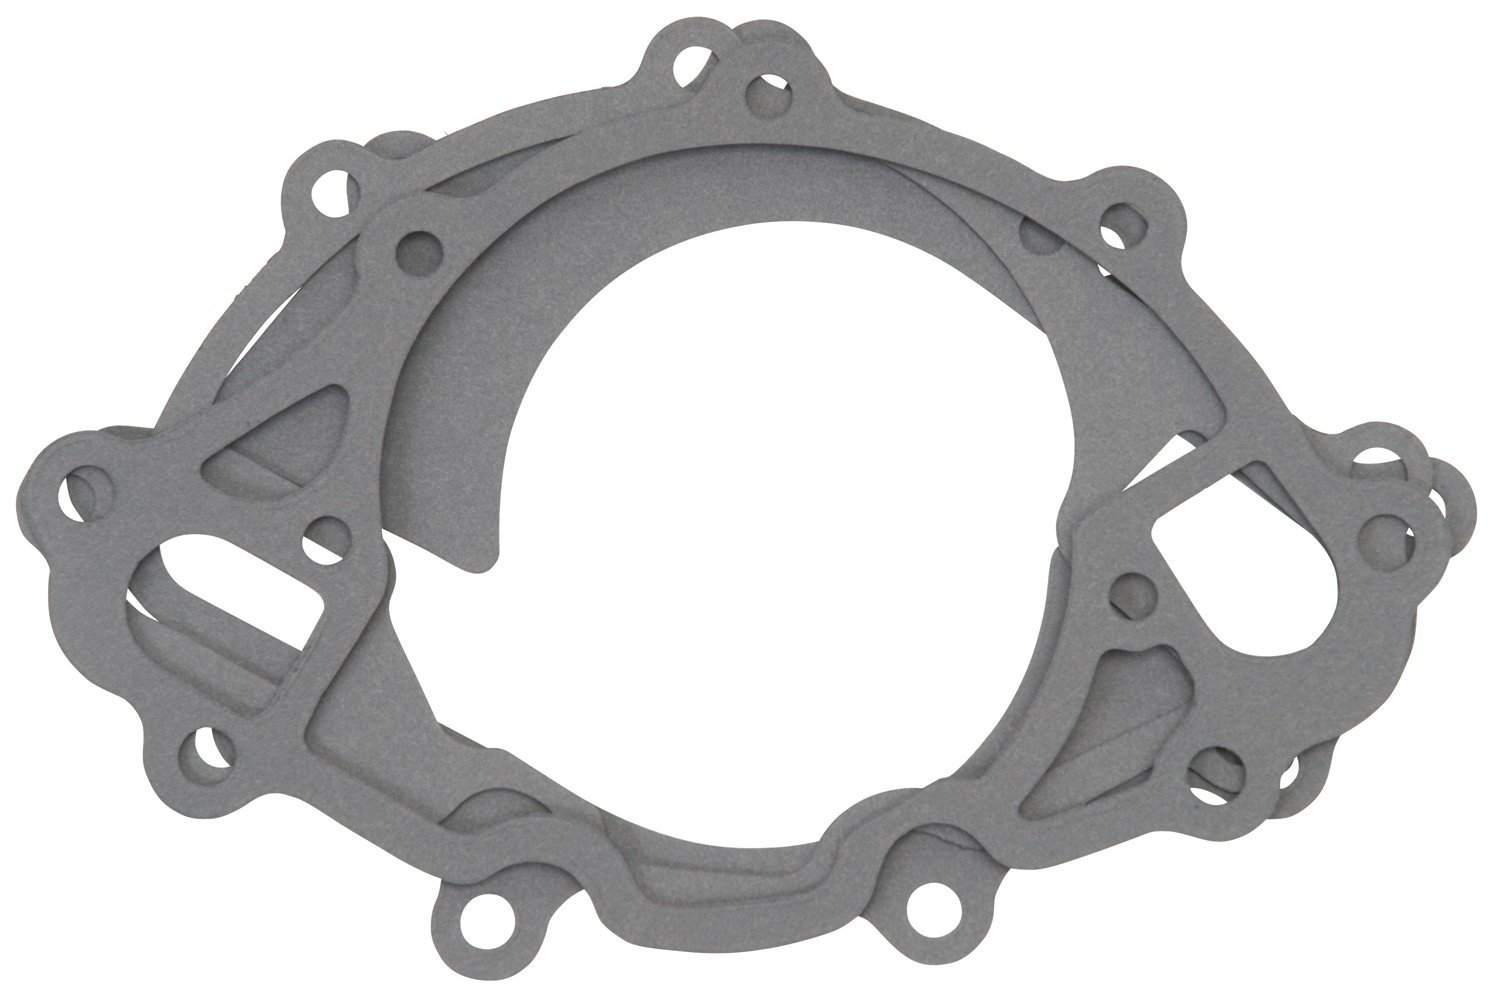 Edelbrock 7254 Water Pump Gasket Kit for Small Block Ford